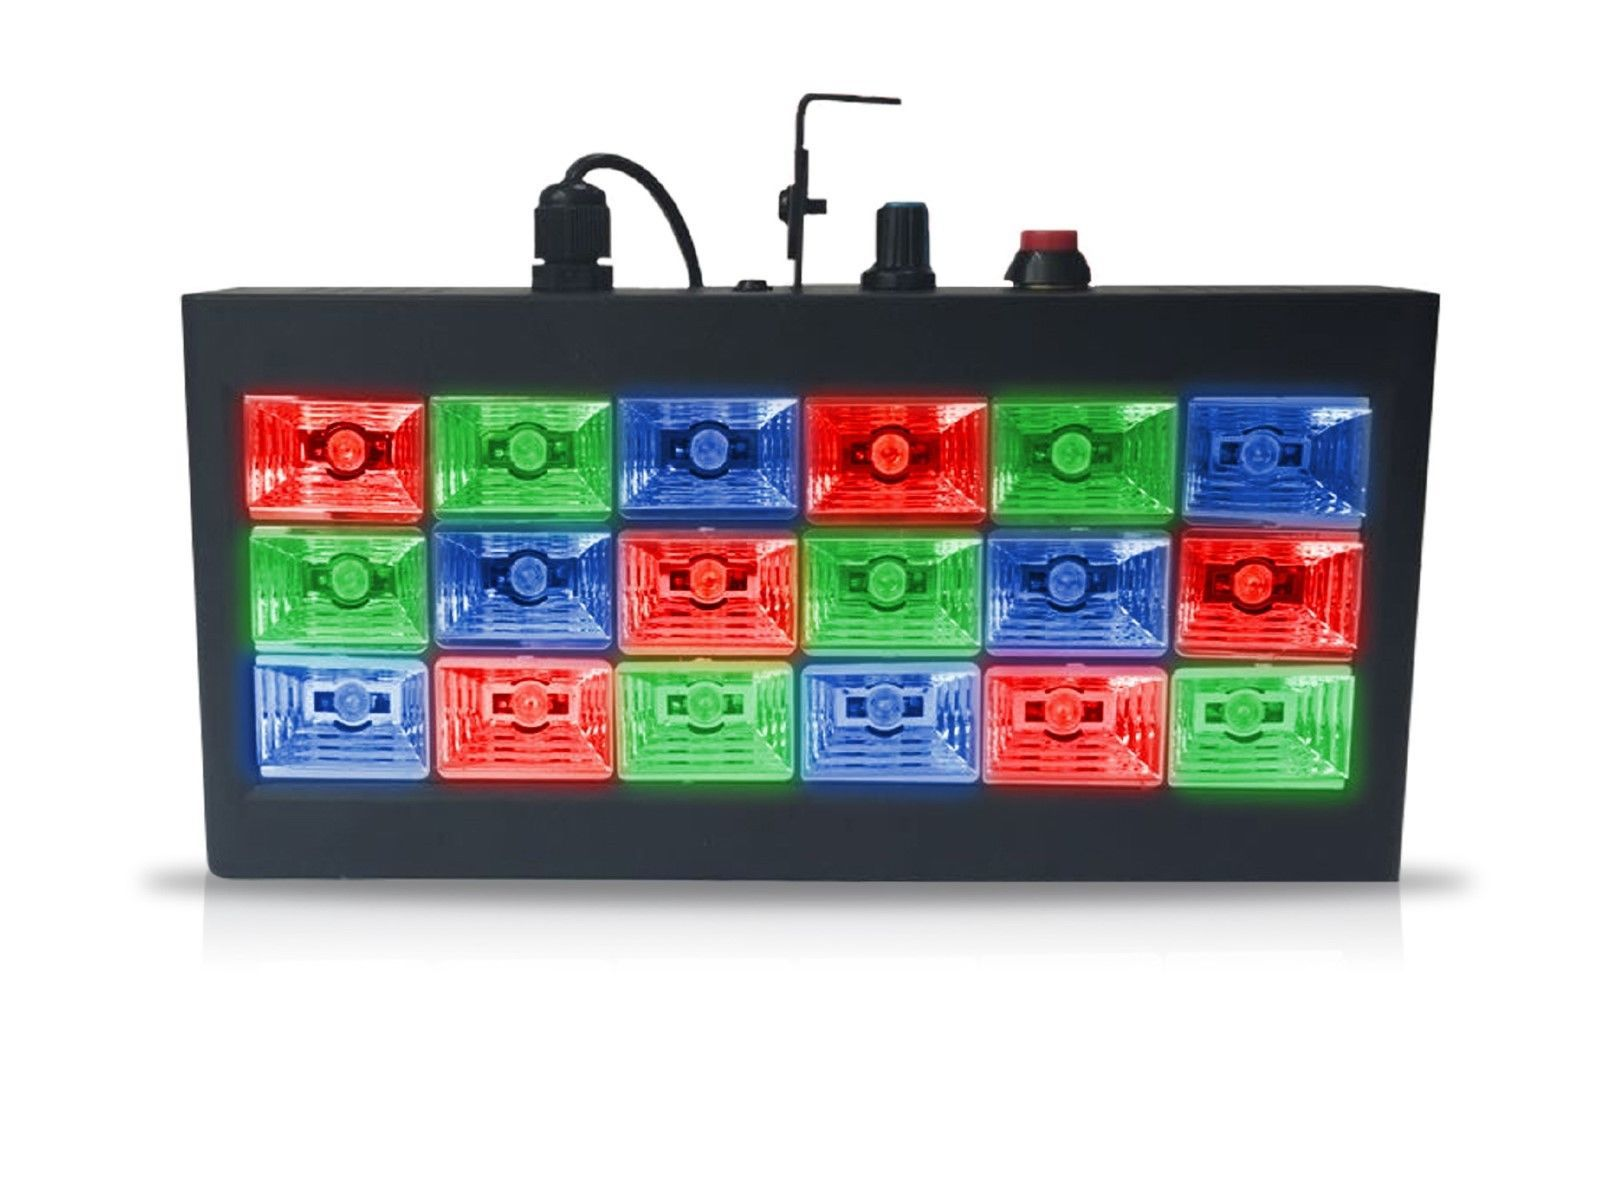 Technical Pro Strobe Series - LED Lights - STRB18c - Sound Active or Auto Switch